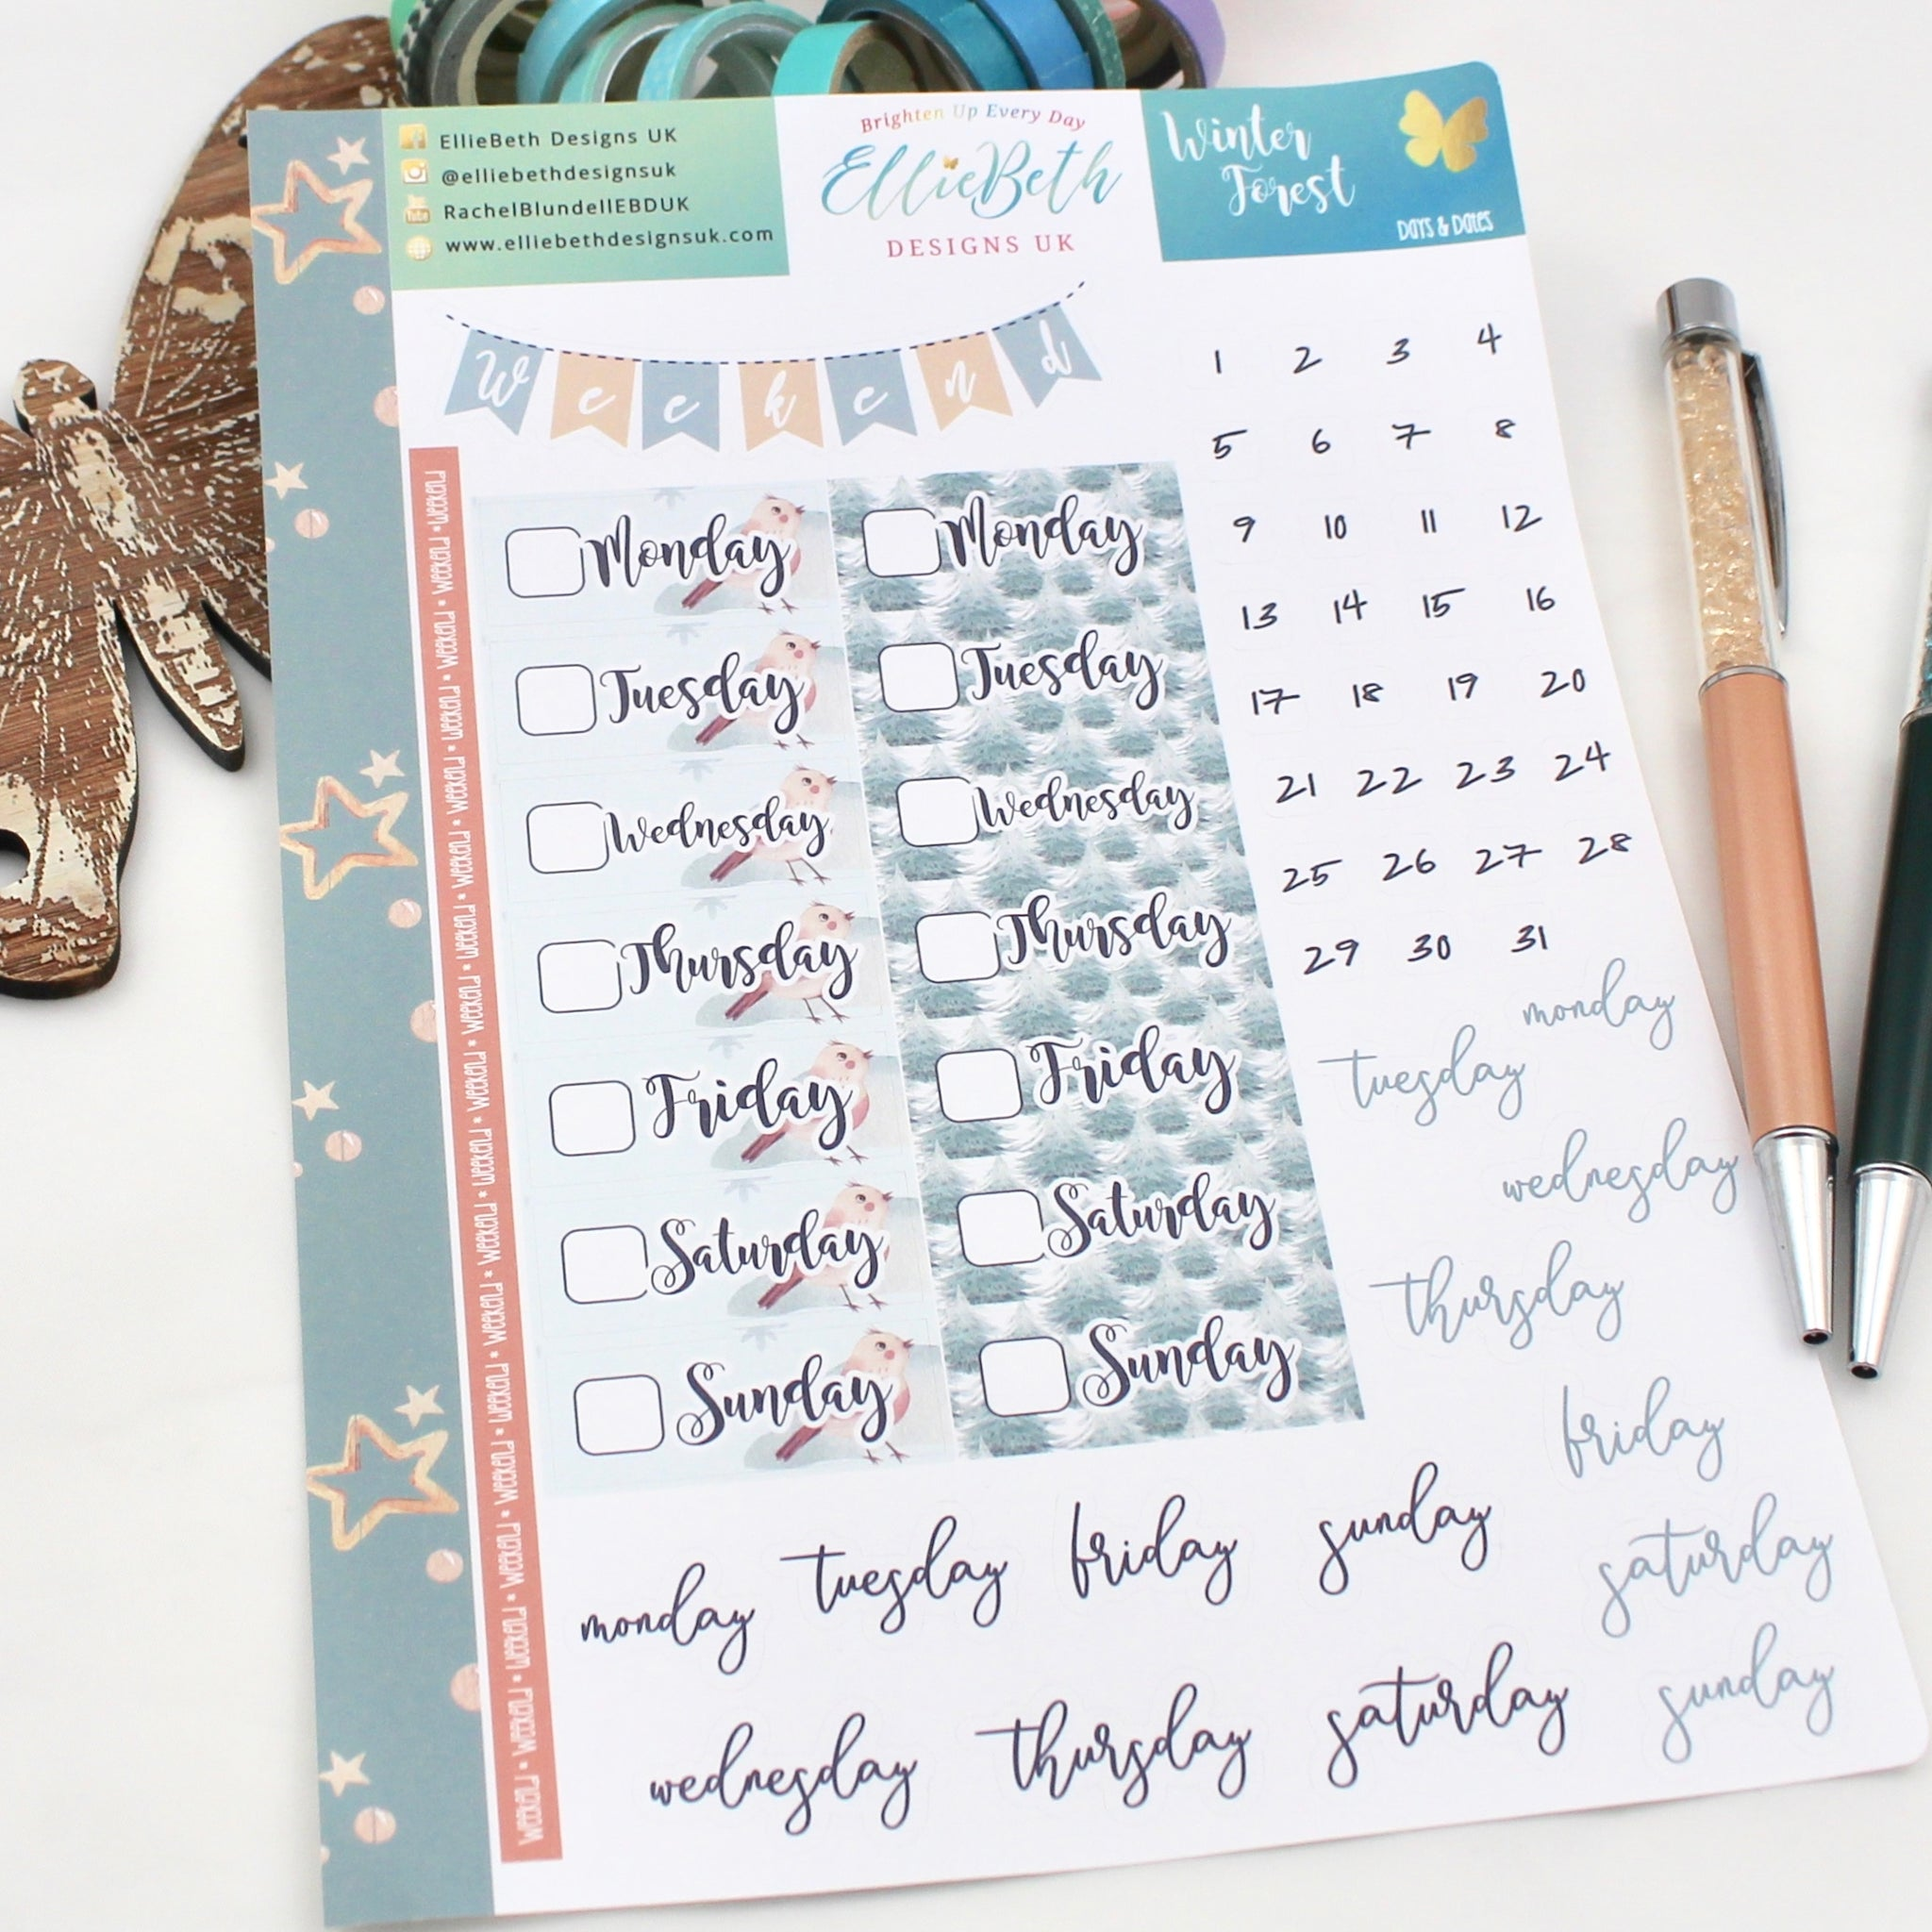 Winter Forest - Days and Dates - A5 binder ready planner stickers - EllieBeth Designs UK